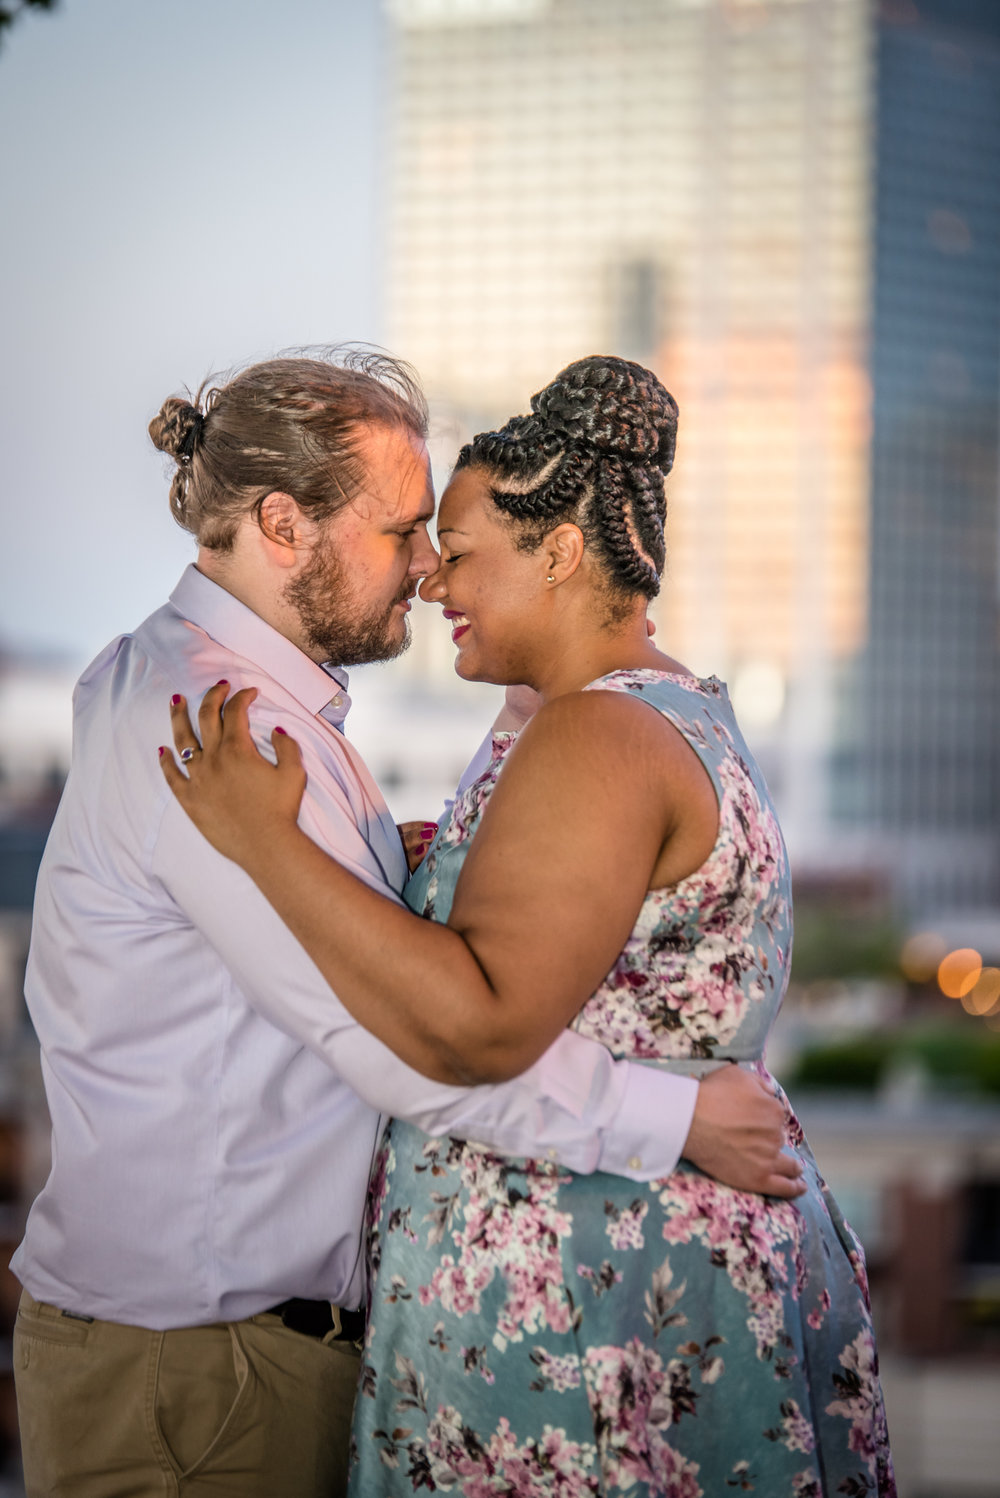 Ronnie Bliss Wedding Photography Baltimore Maryland embrace